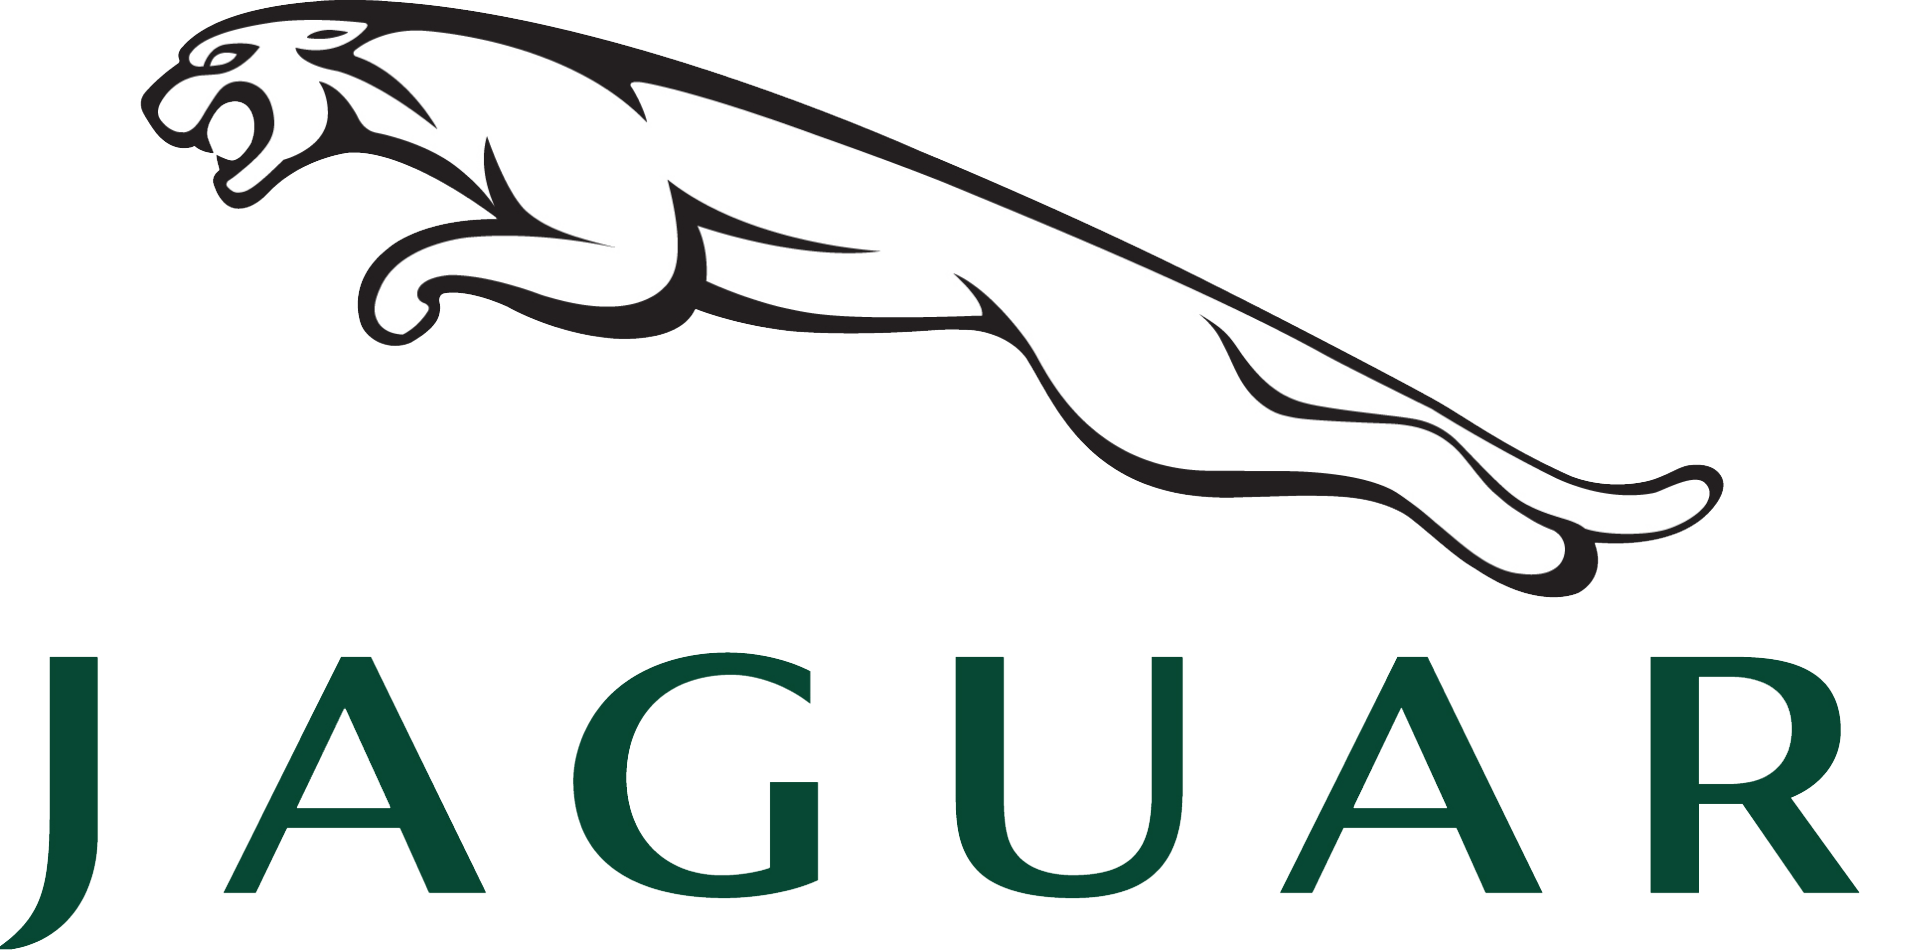 Jaguar_Logo copy.png